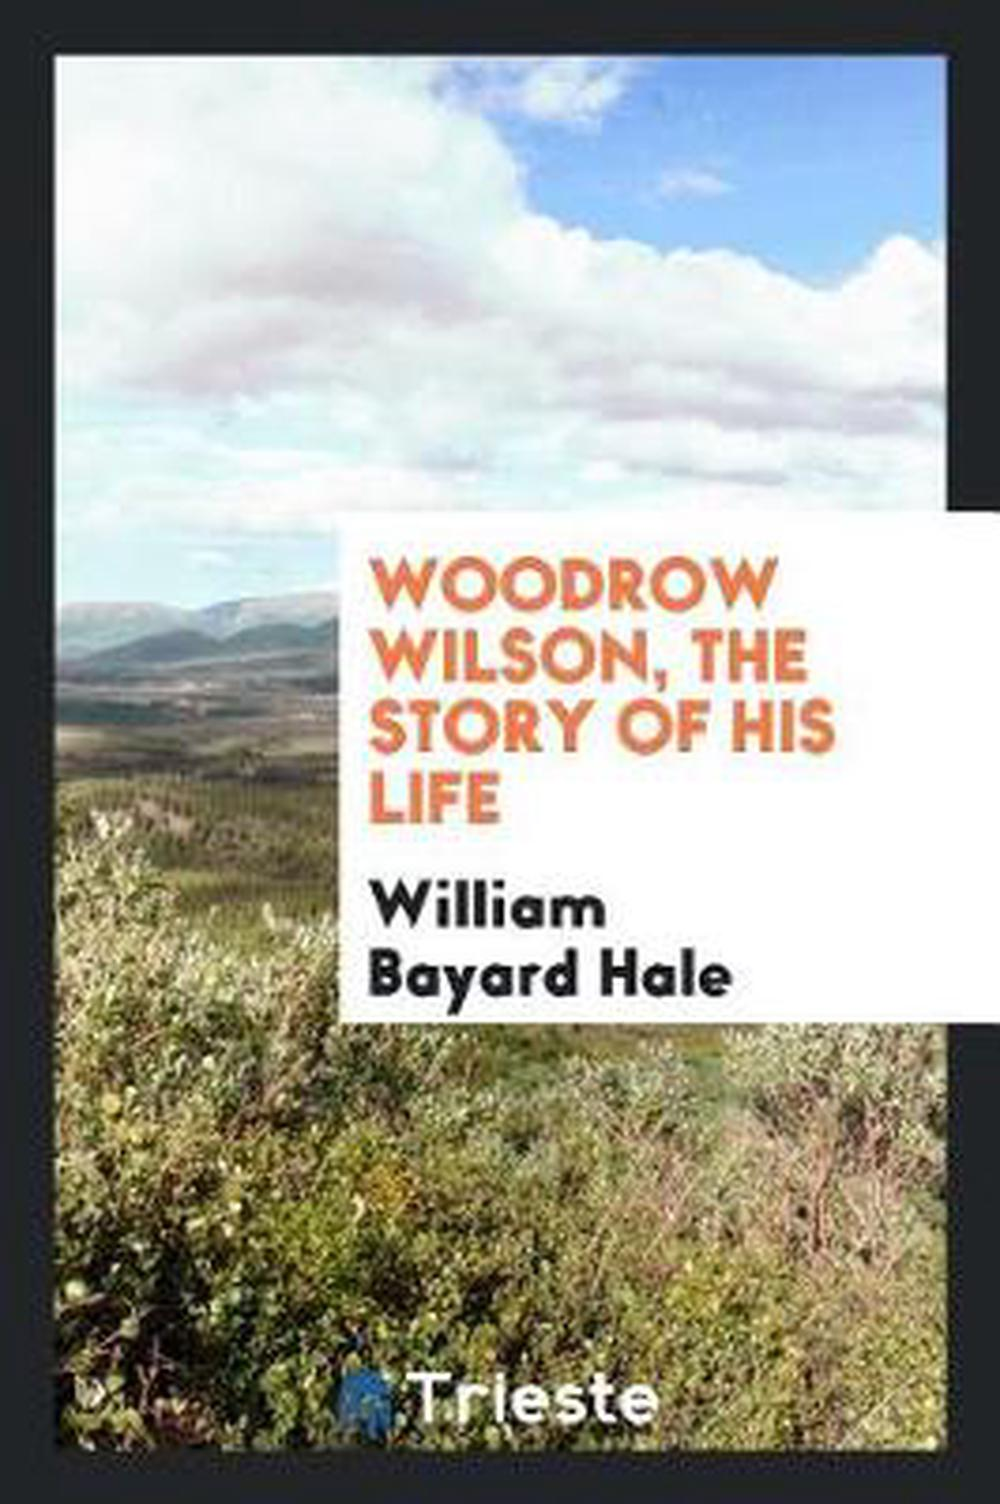 Woodrow Wilson, the story of his life by William Bayard Hale (English) Paperback